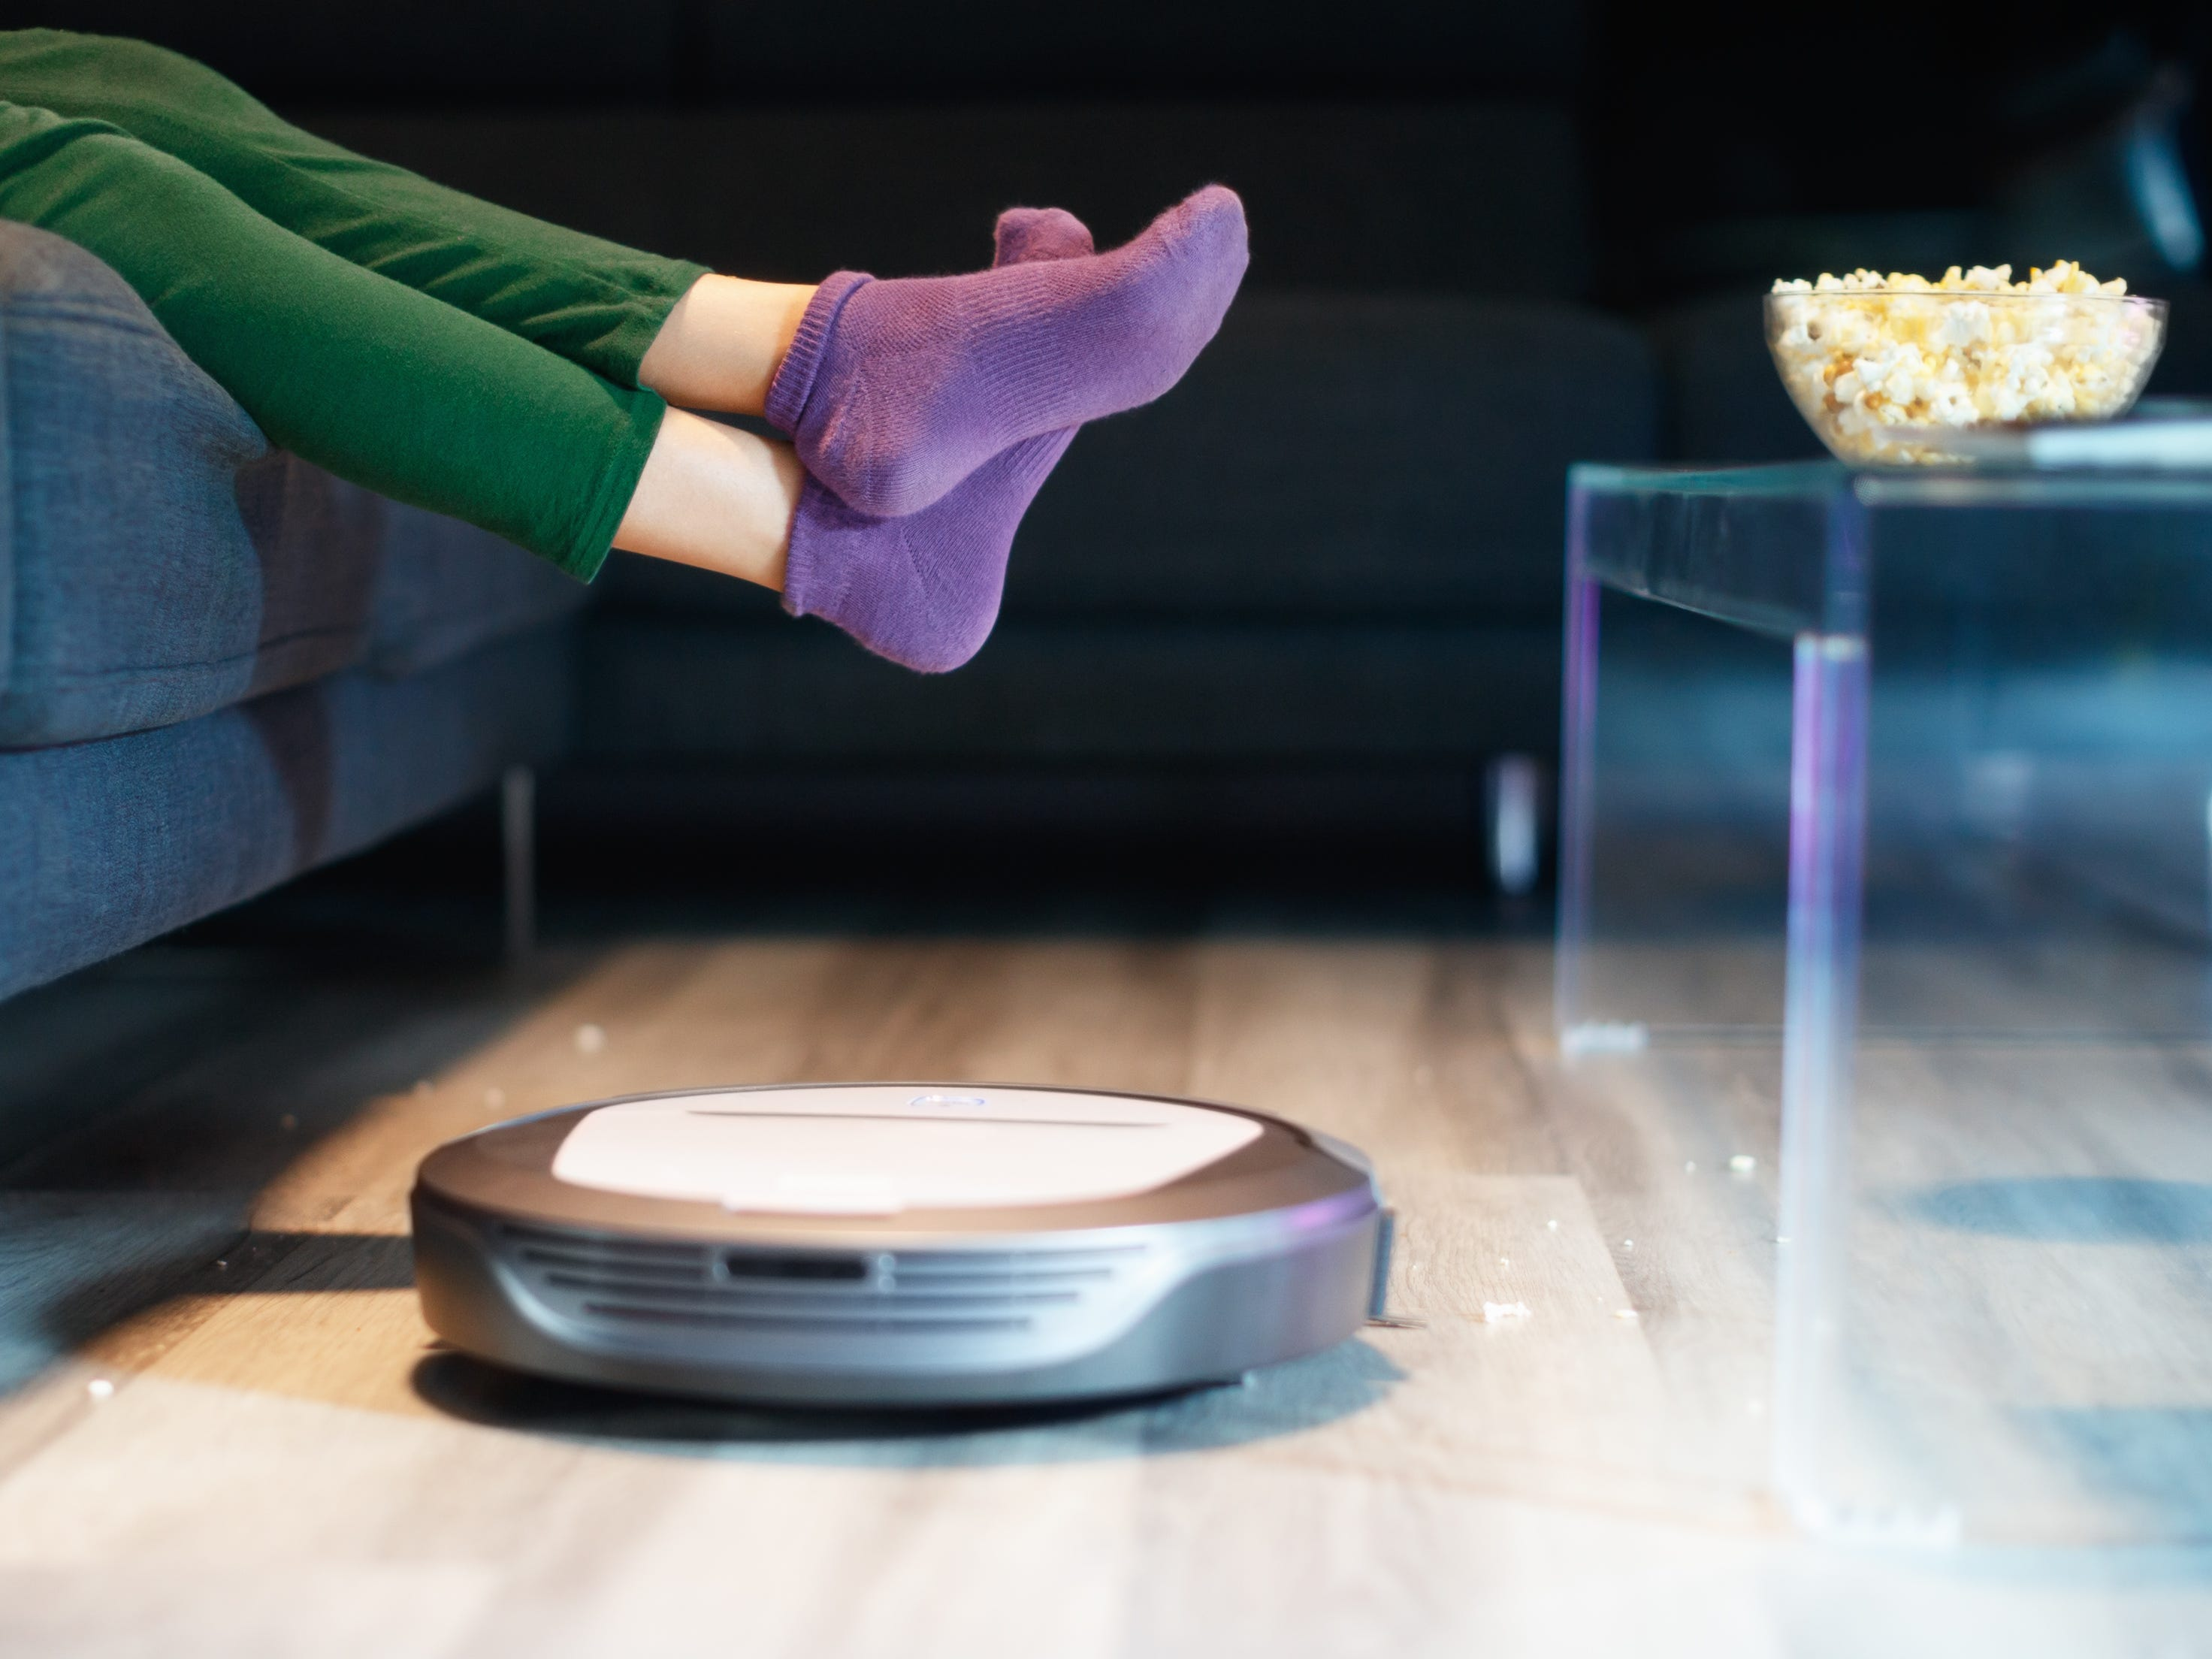 Win a Robot Vacuum - ENDED